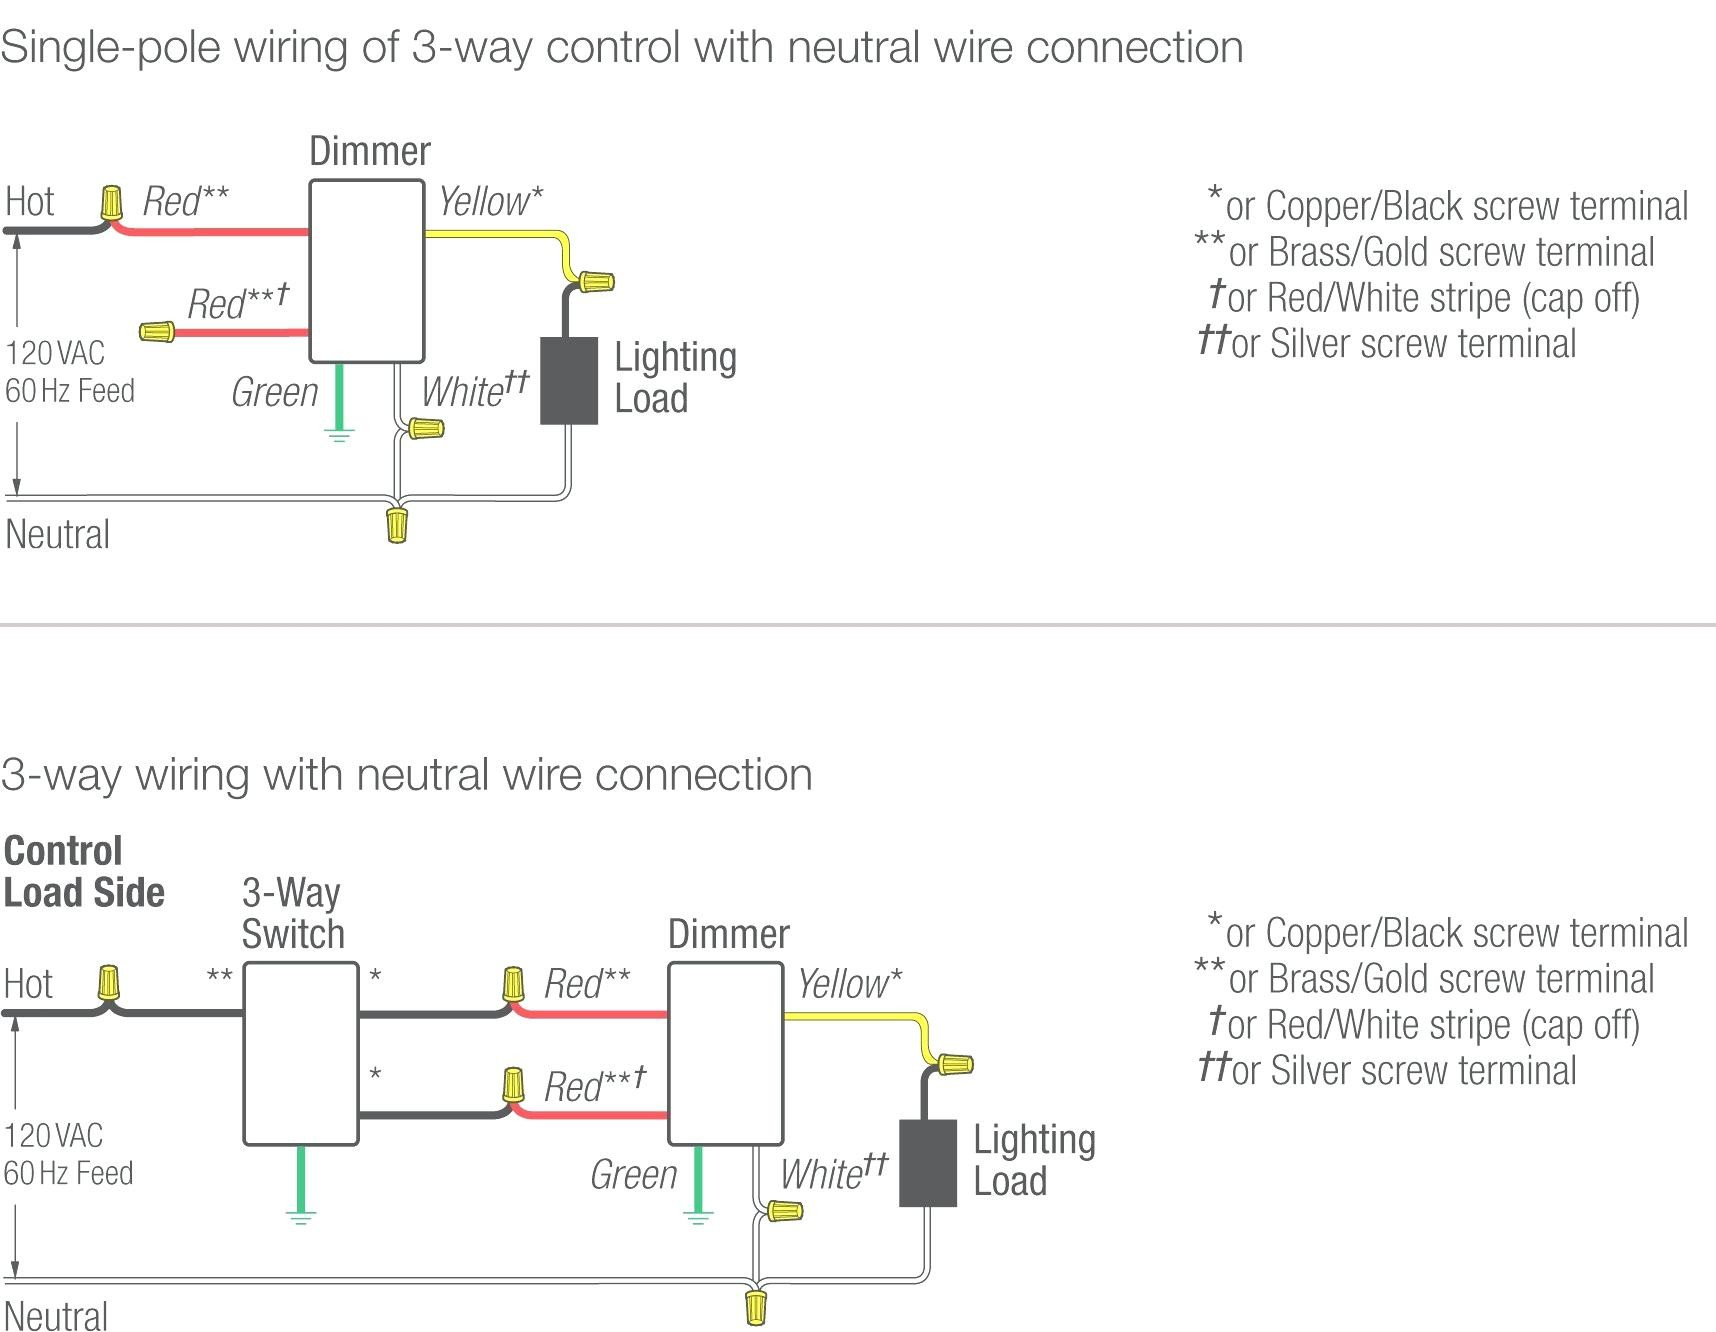 277v ballast wiring diagram Download-wiring diagram of exhaust fan refrence bathroom ideas 277v tov rh wheathill co 480 277V Wiring Diagram Advance Ballast Wiring Diagram 20-e